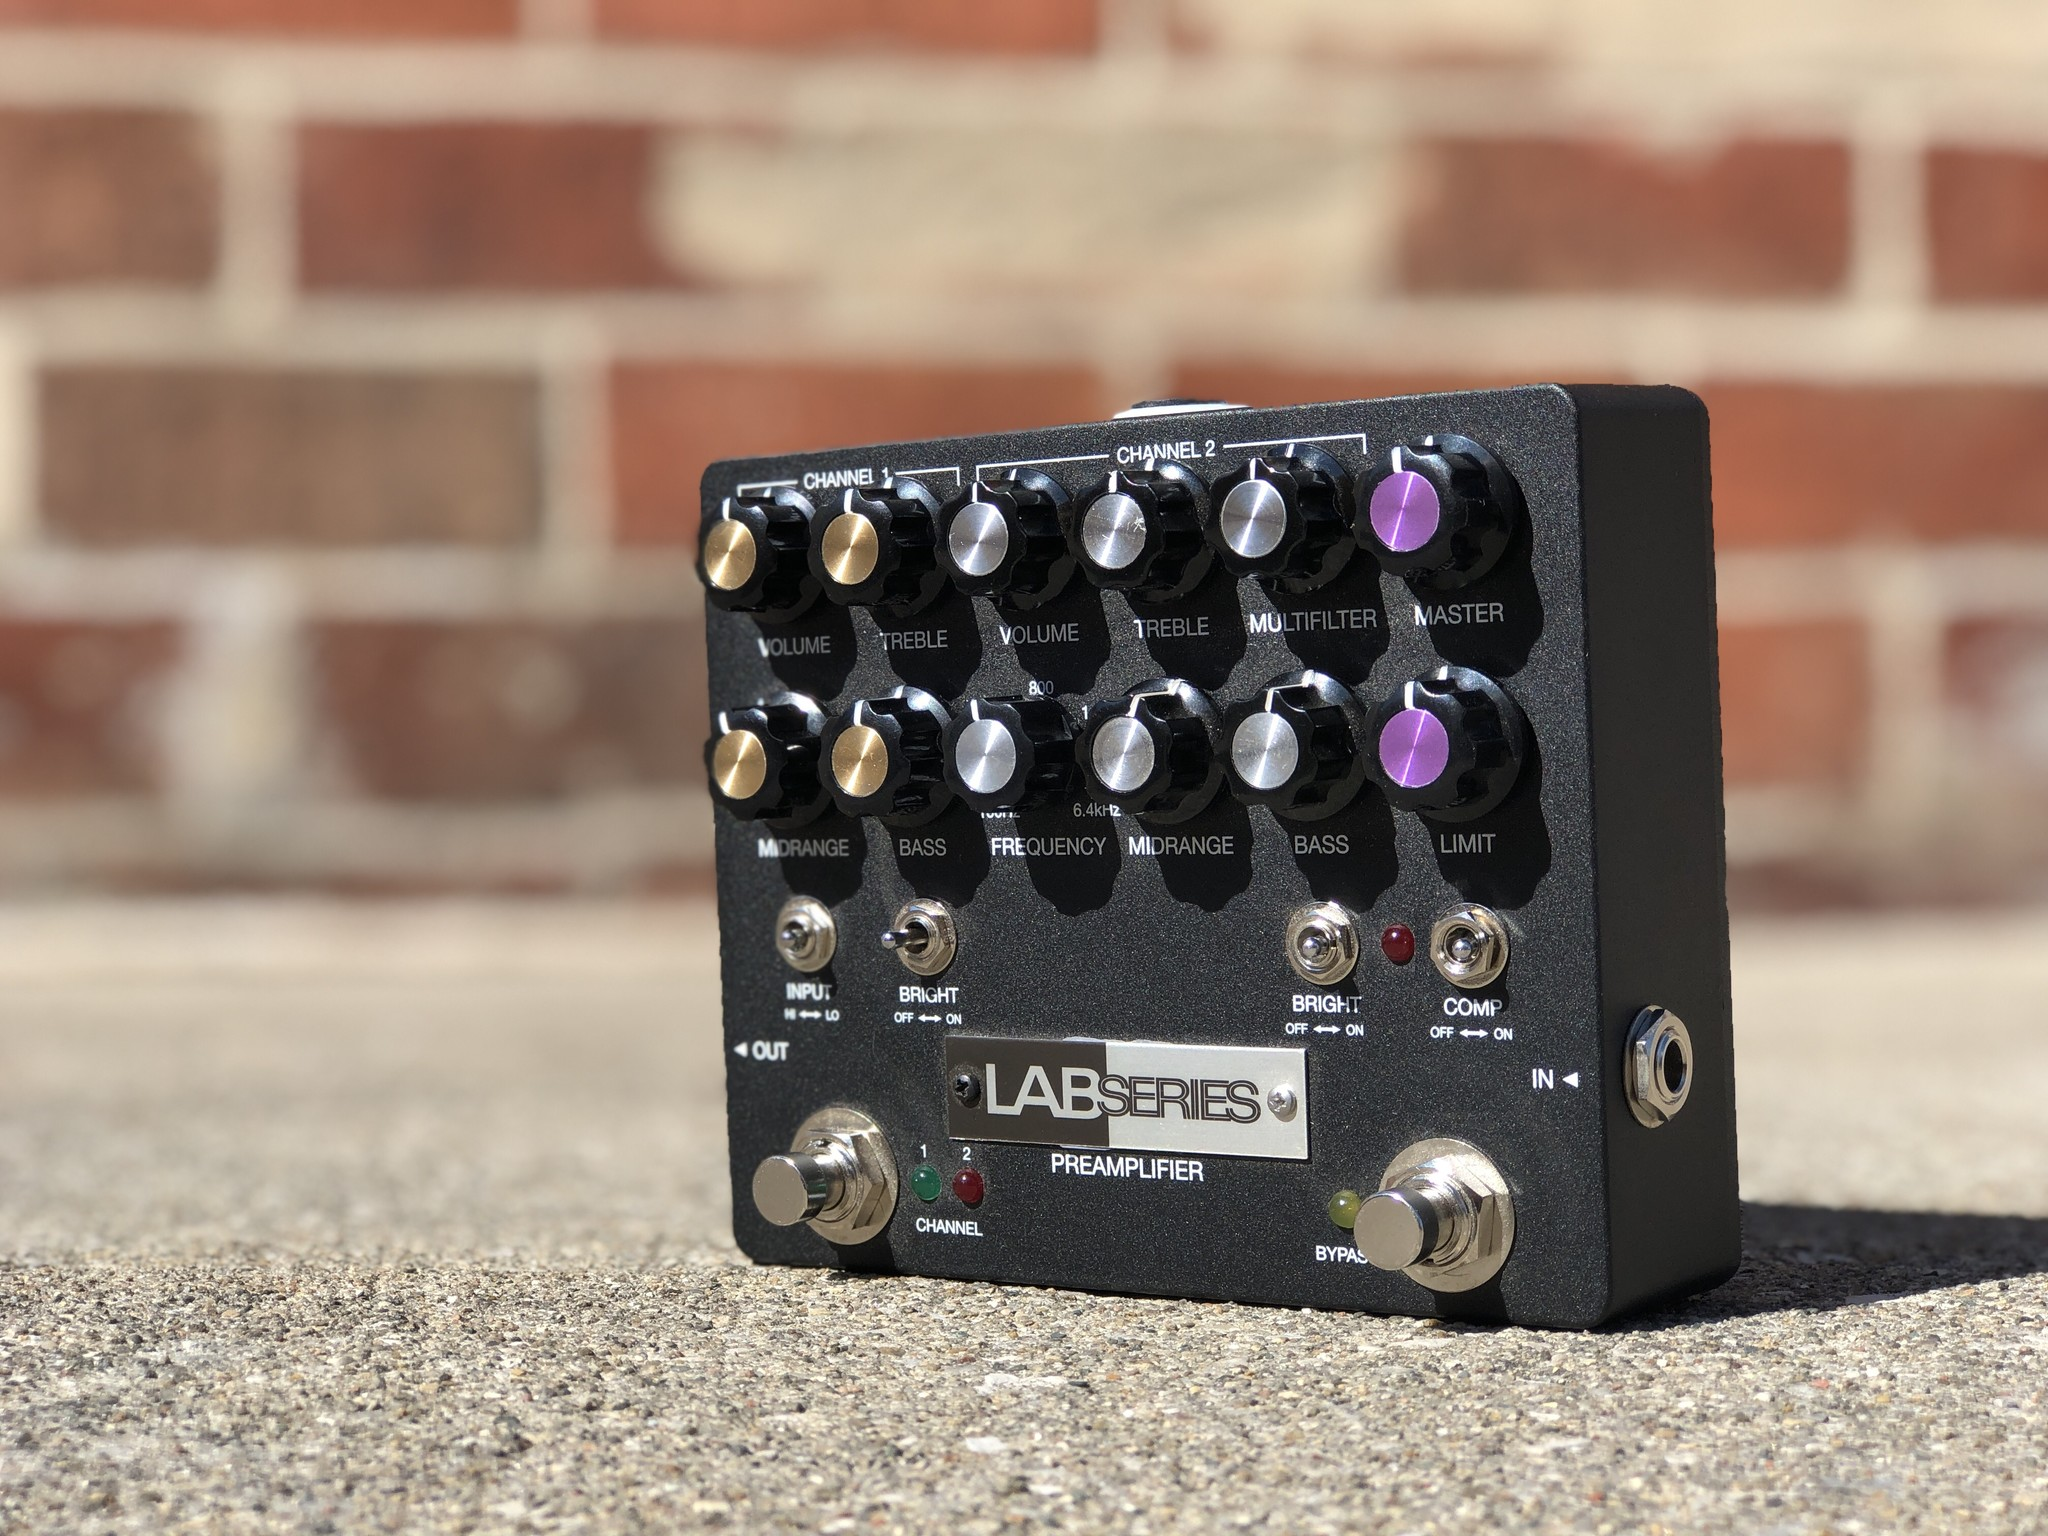 Lab Series L5 PreAmp - GenErik Sounds / Aion-4